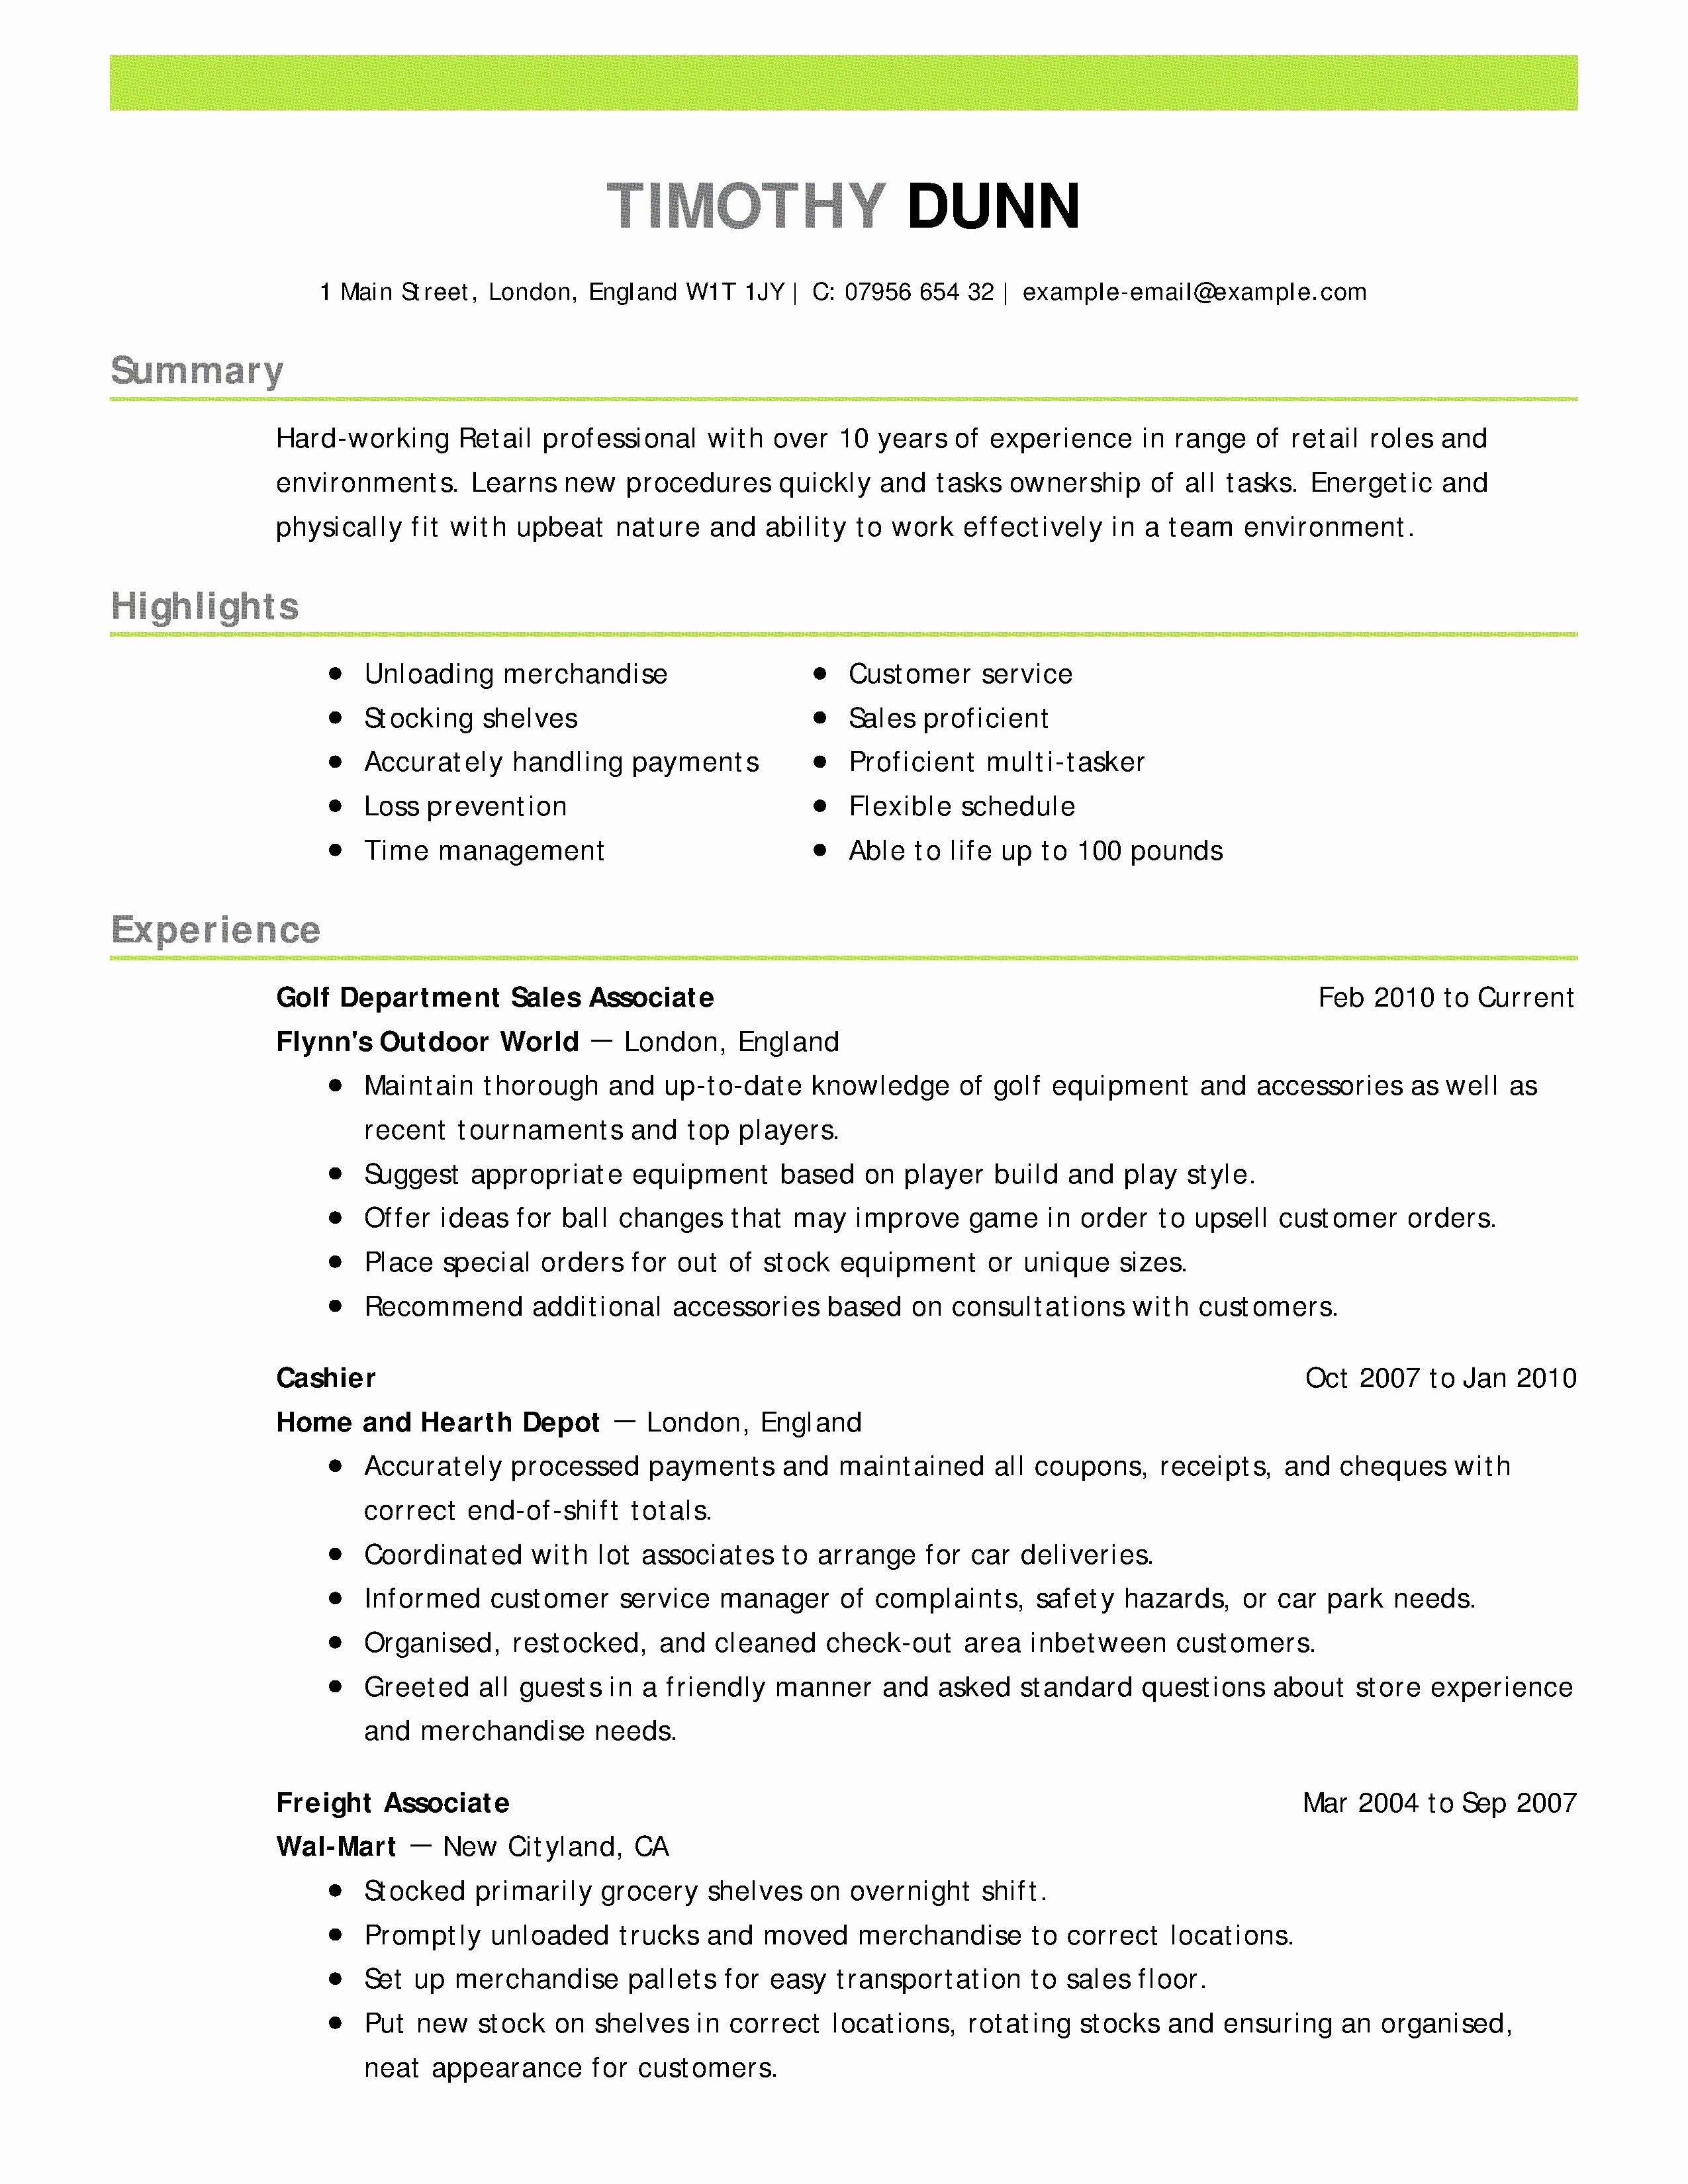 8 Resume Objective for Career Change Examples Collection | Resume